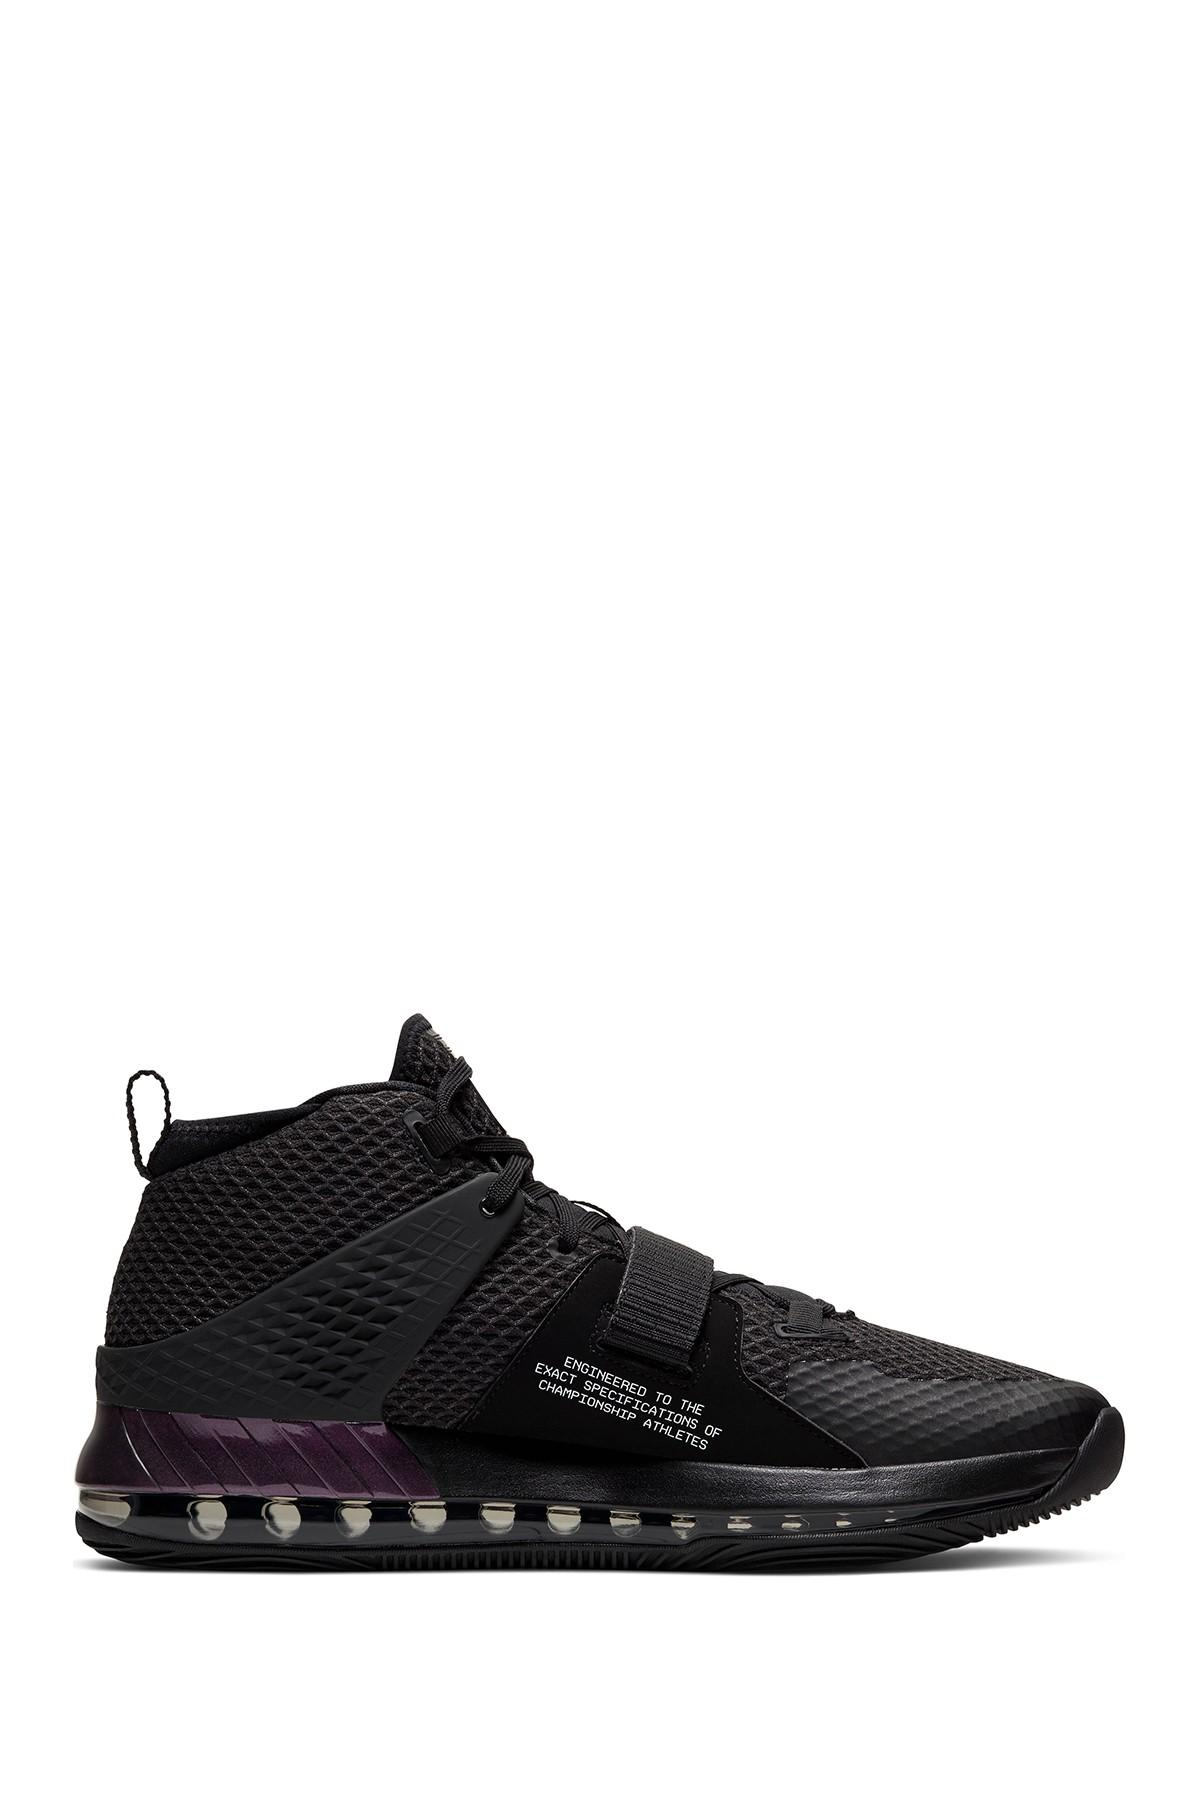 Nike Air Force Max Ii Basketball Shoe in Black for Men - Lyst